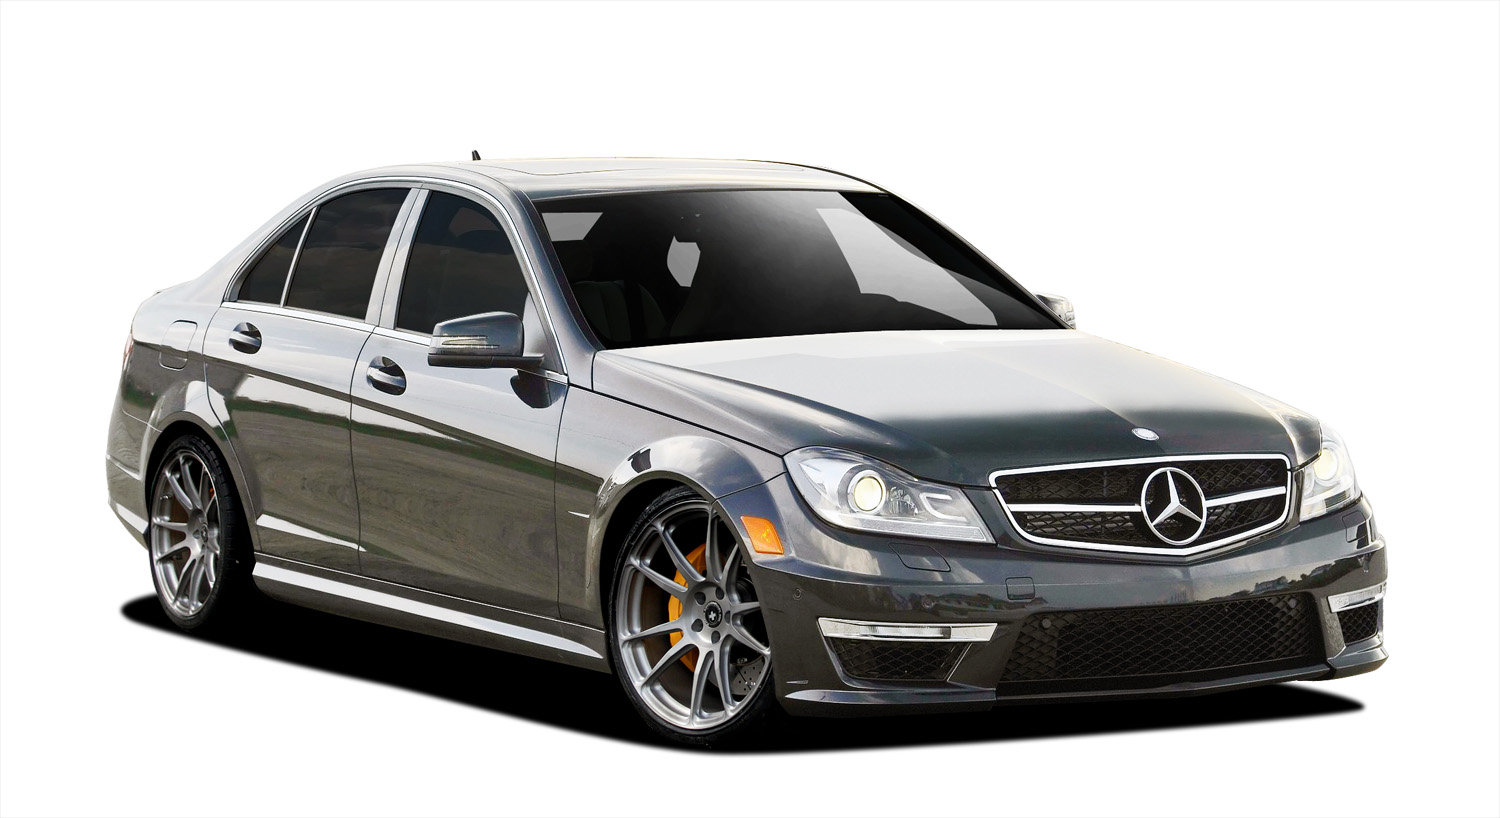 Polypropylene Body Kit Bodykit for 2014 Mercedes C Class ALL - Mercedes C Class C250 W204 Vaero C63 Look Conversion Kit ( with PDC ) - 9 Piece - Inclu